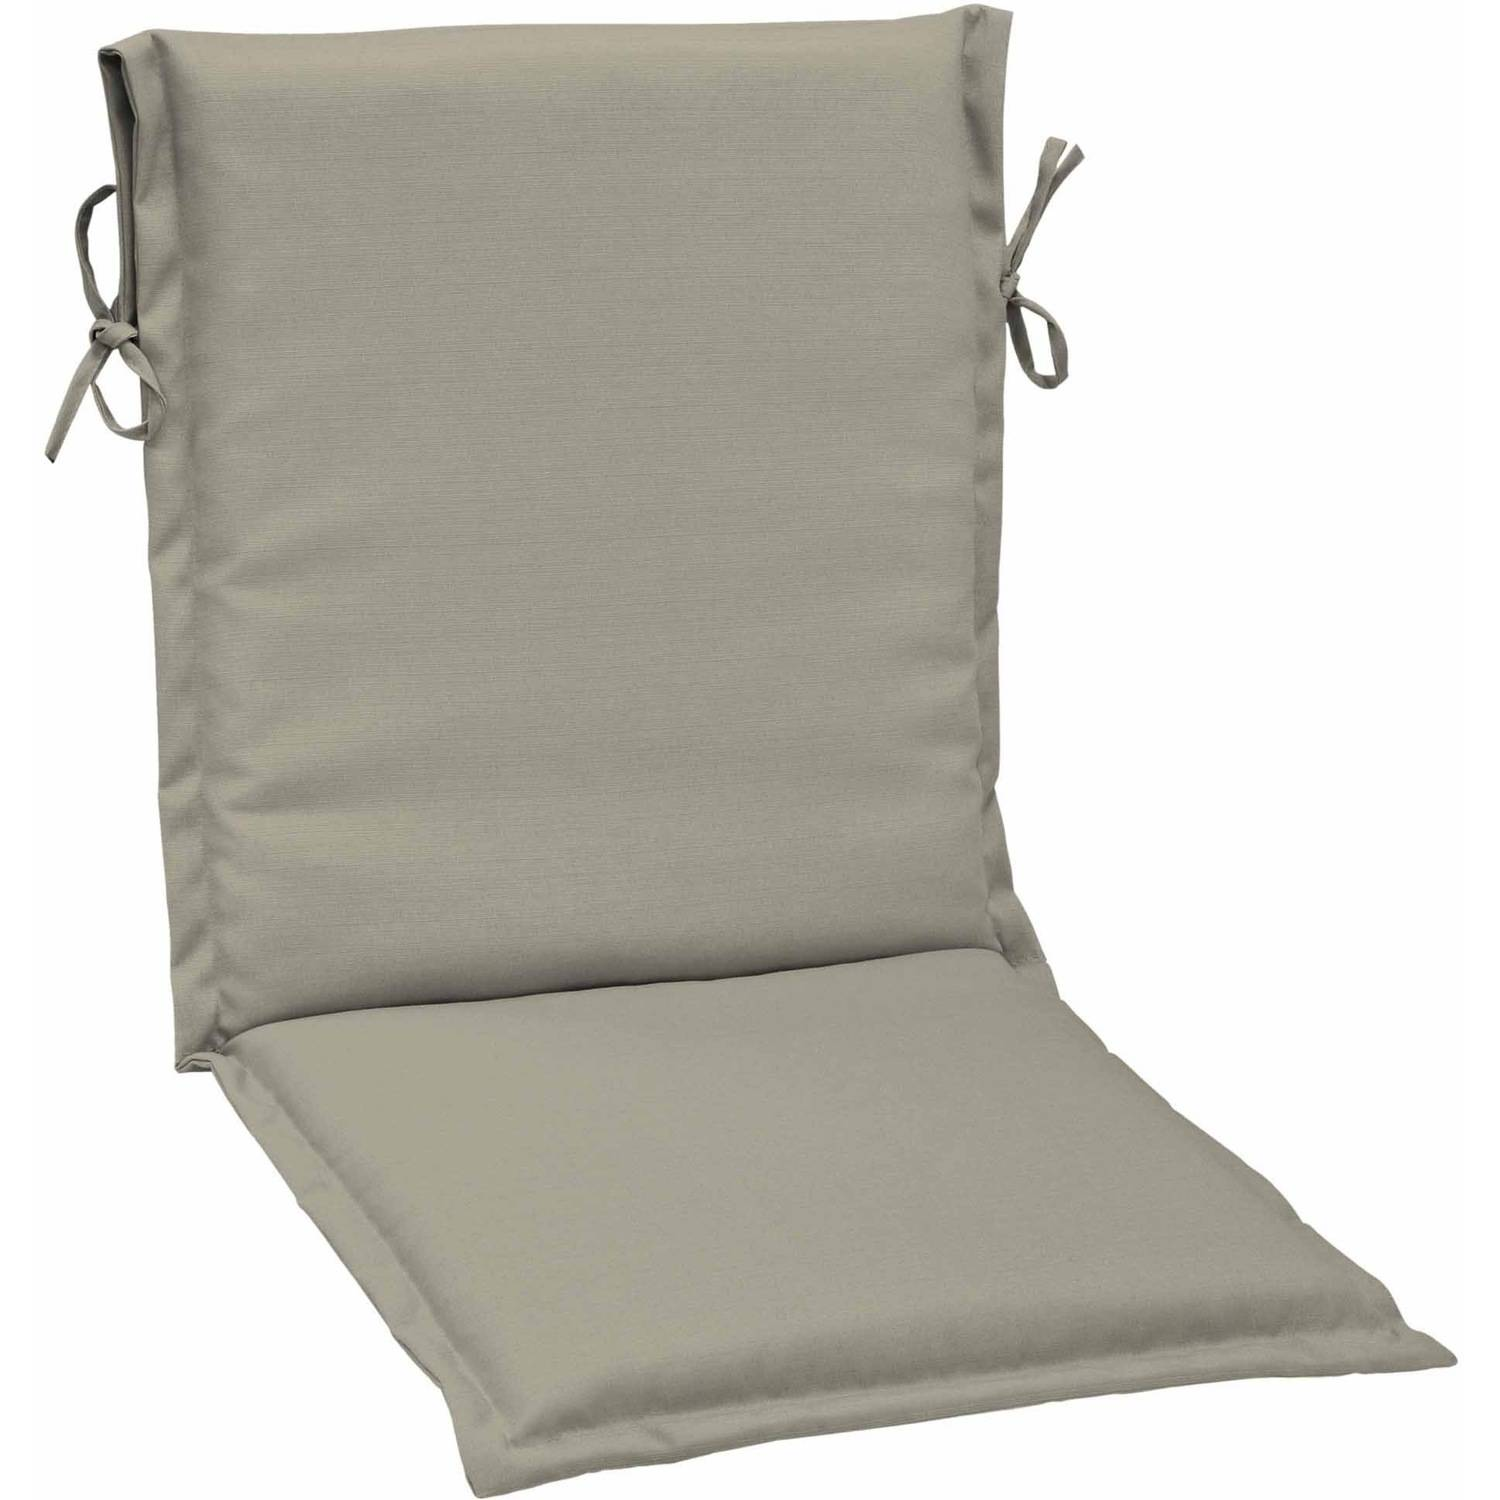 Better Homes And Gardens Outdoor Patio Sling Chair Cushion